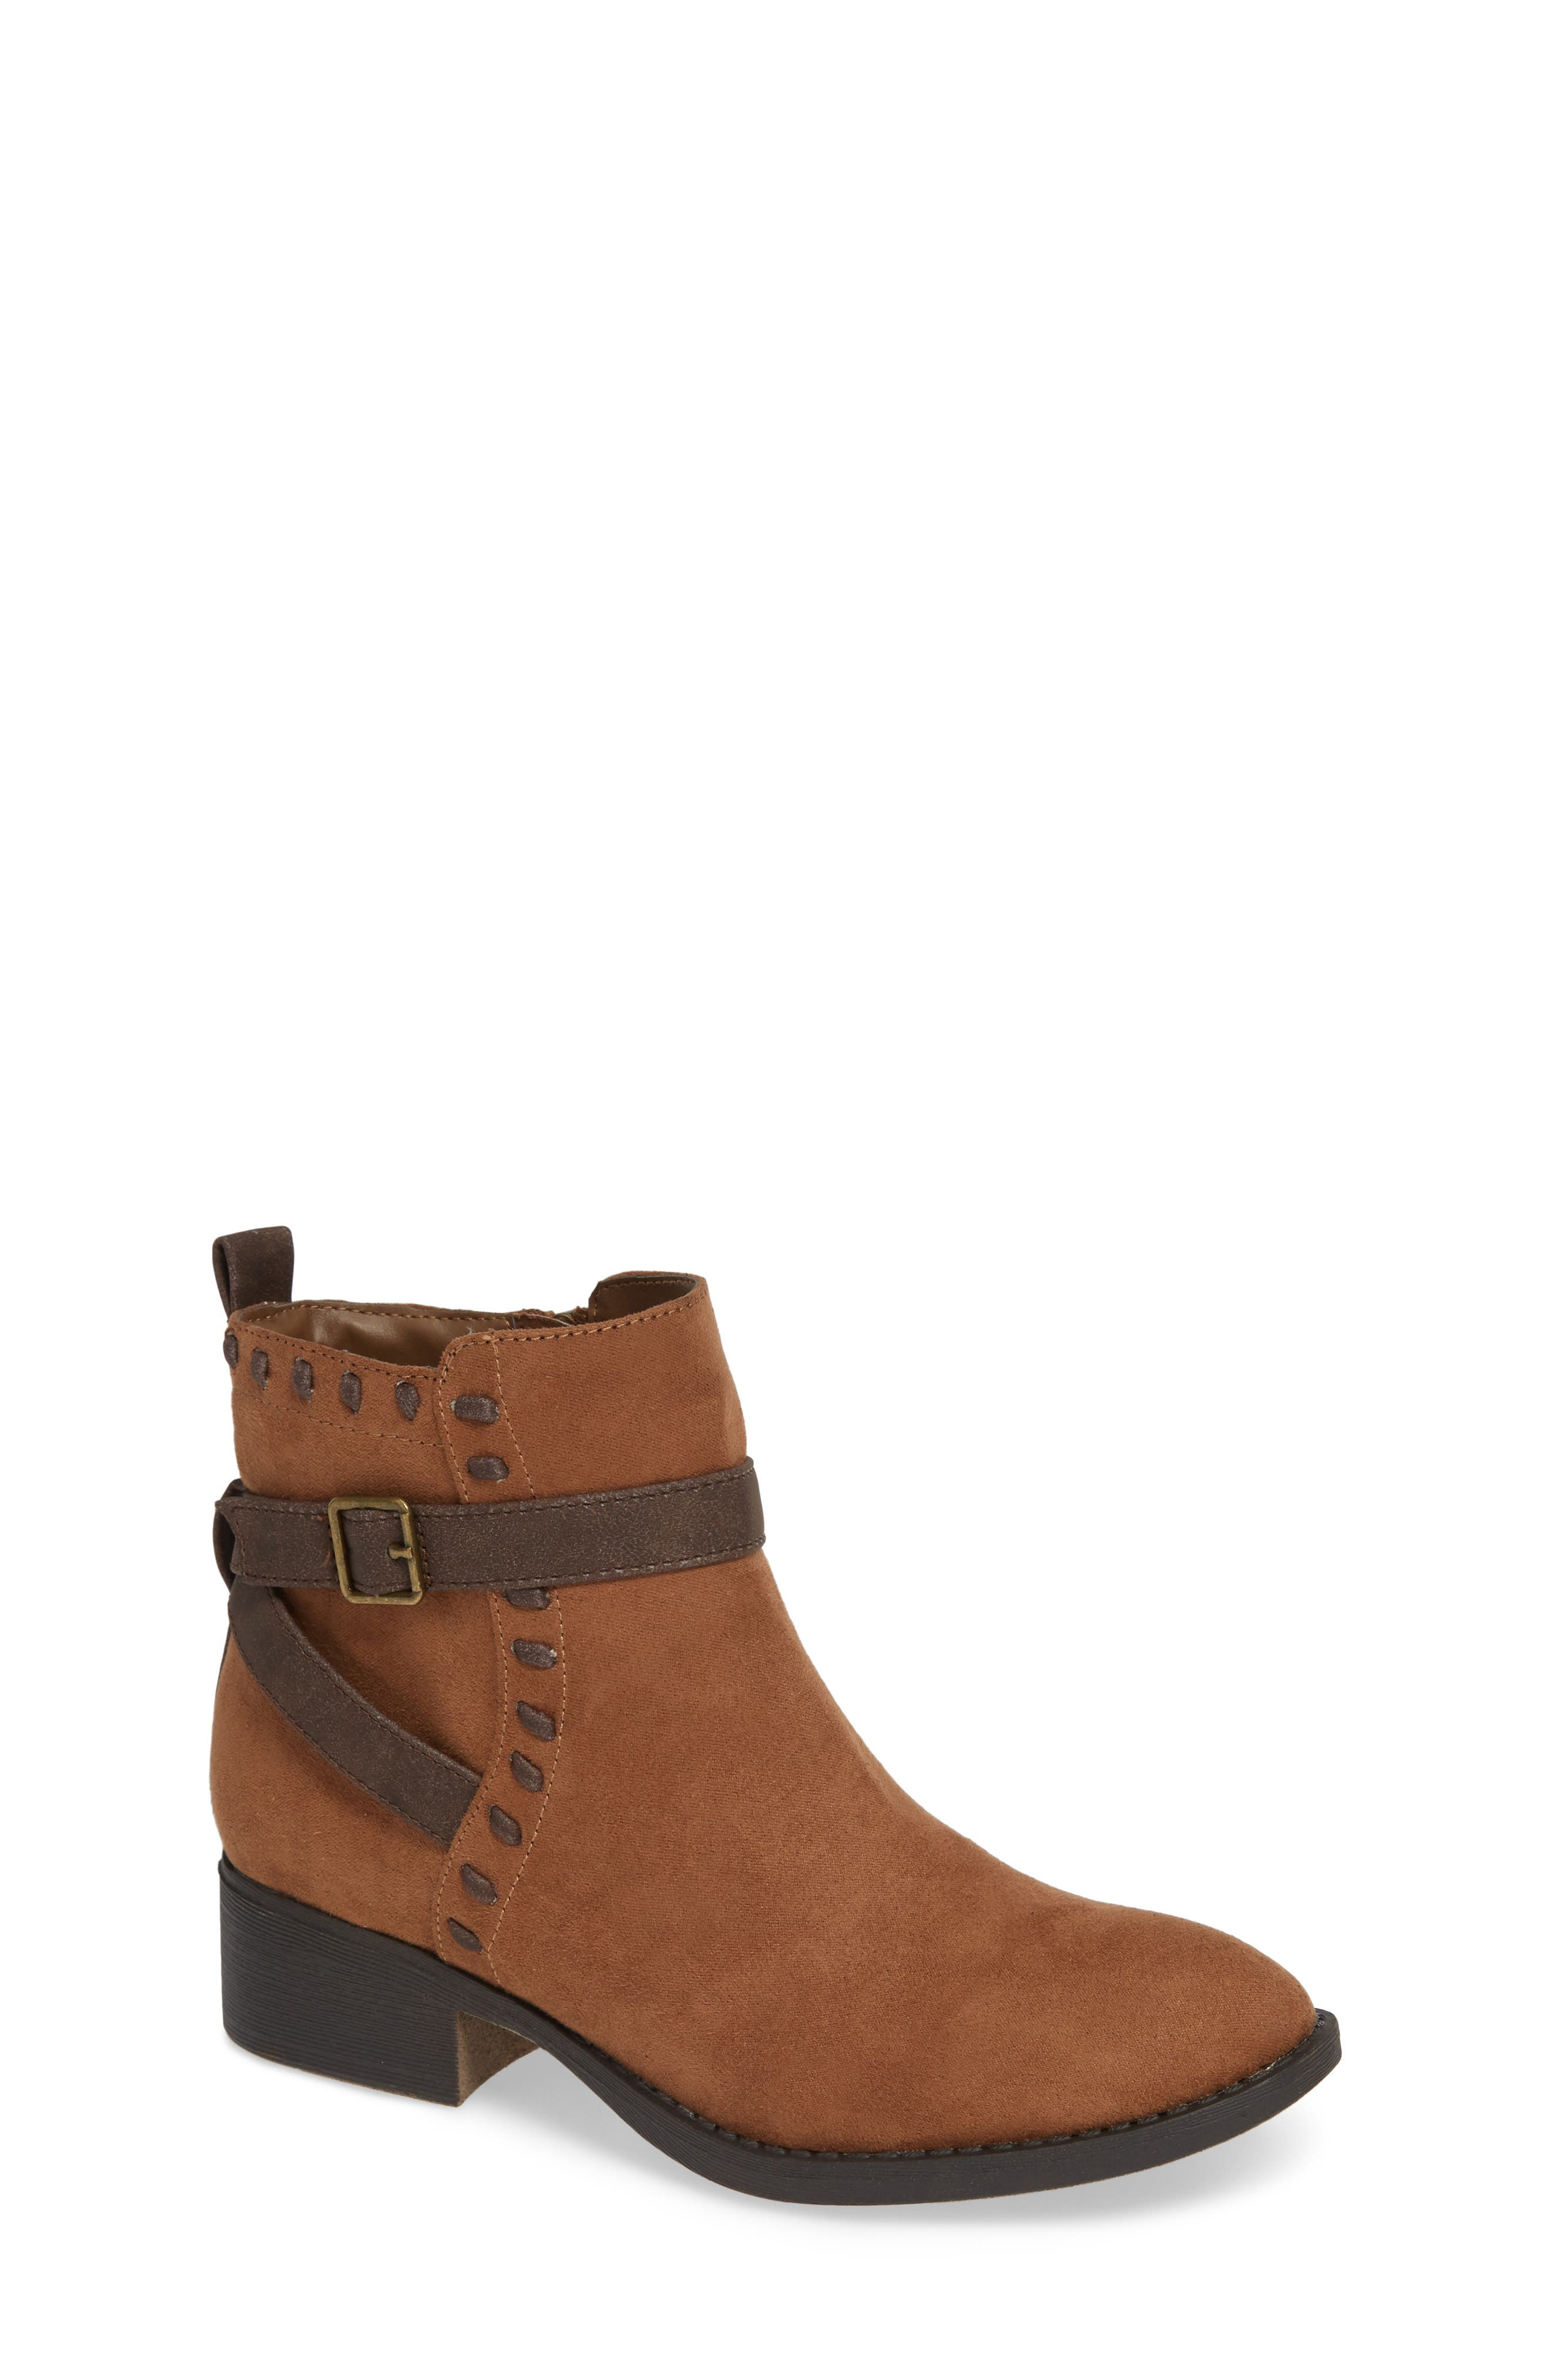 REACTION KENNETH COLE Downtown Bootie, Main, color, 204